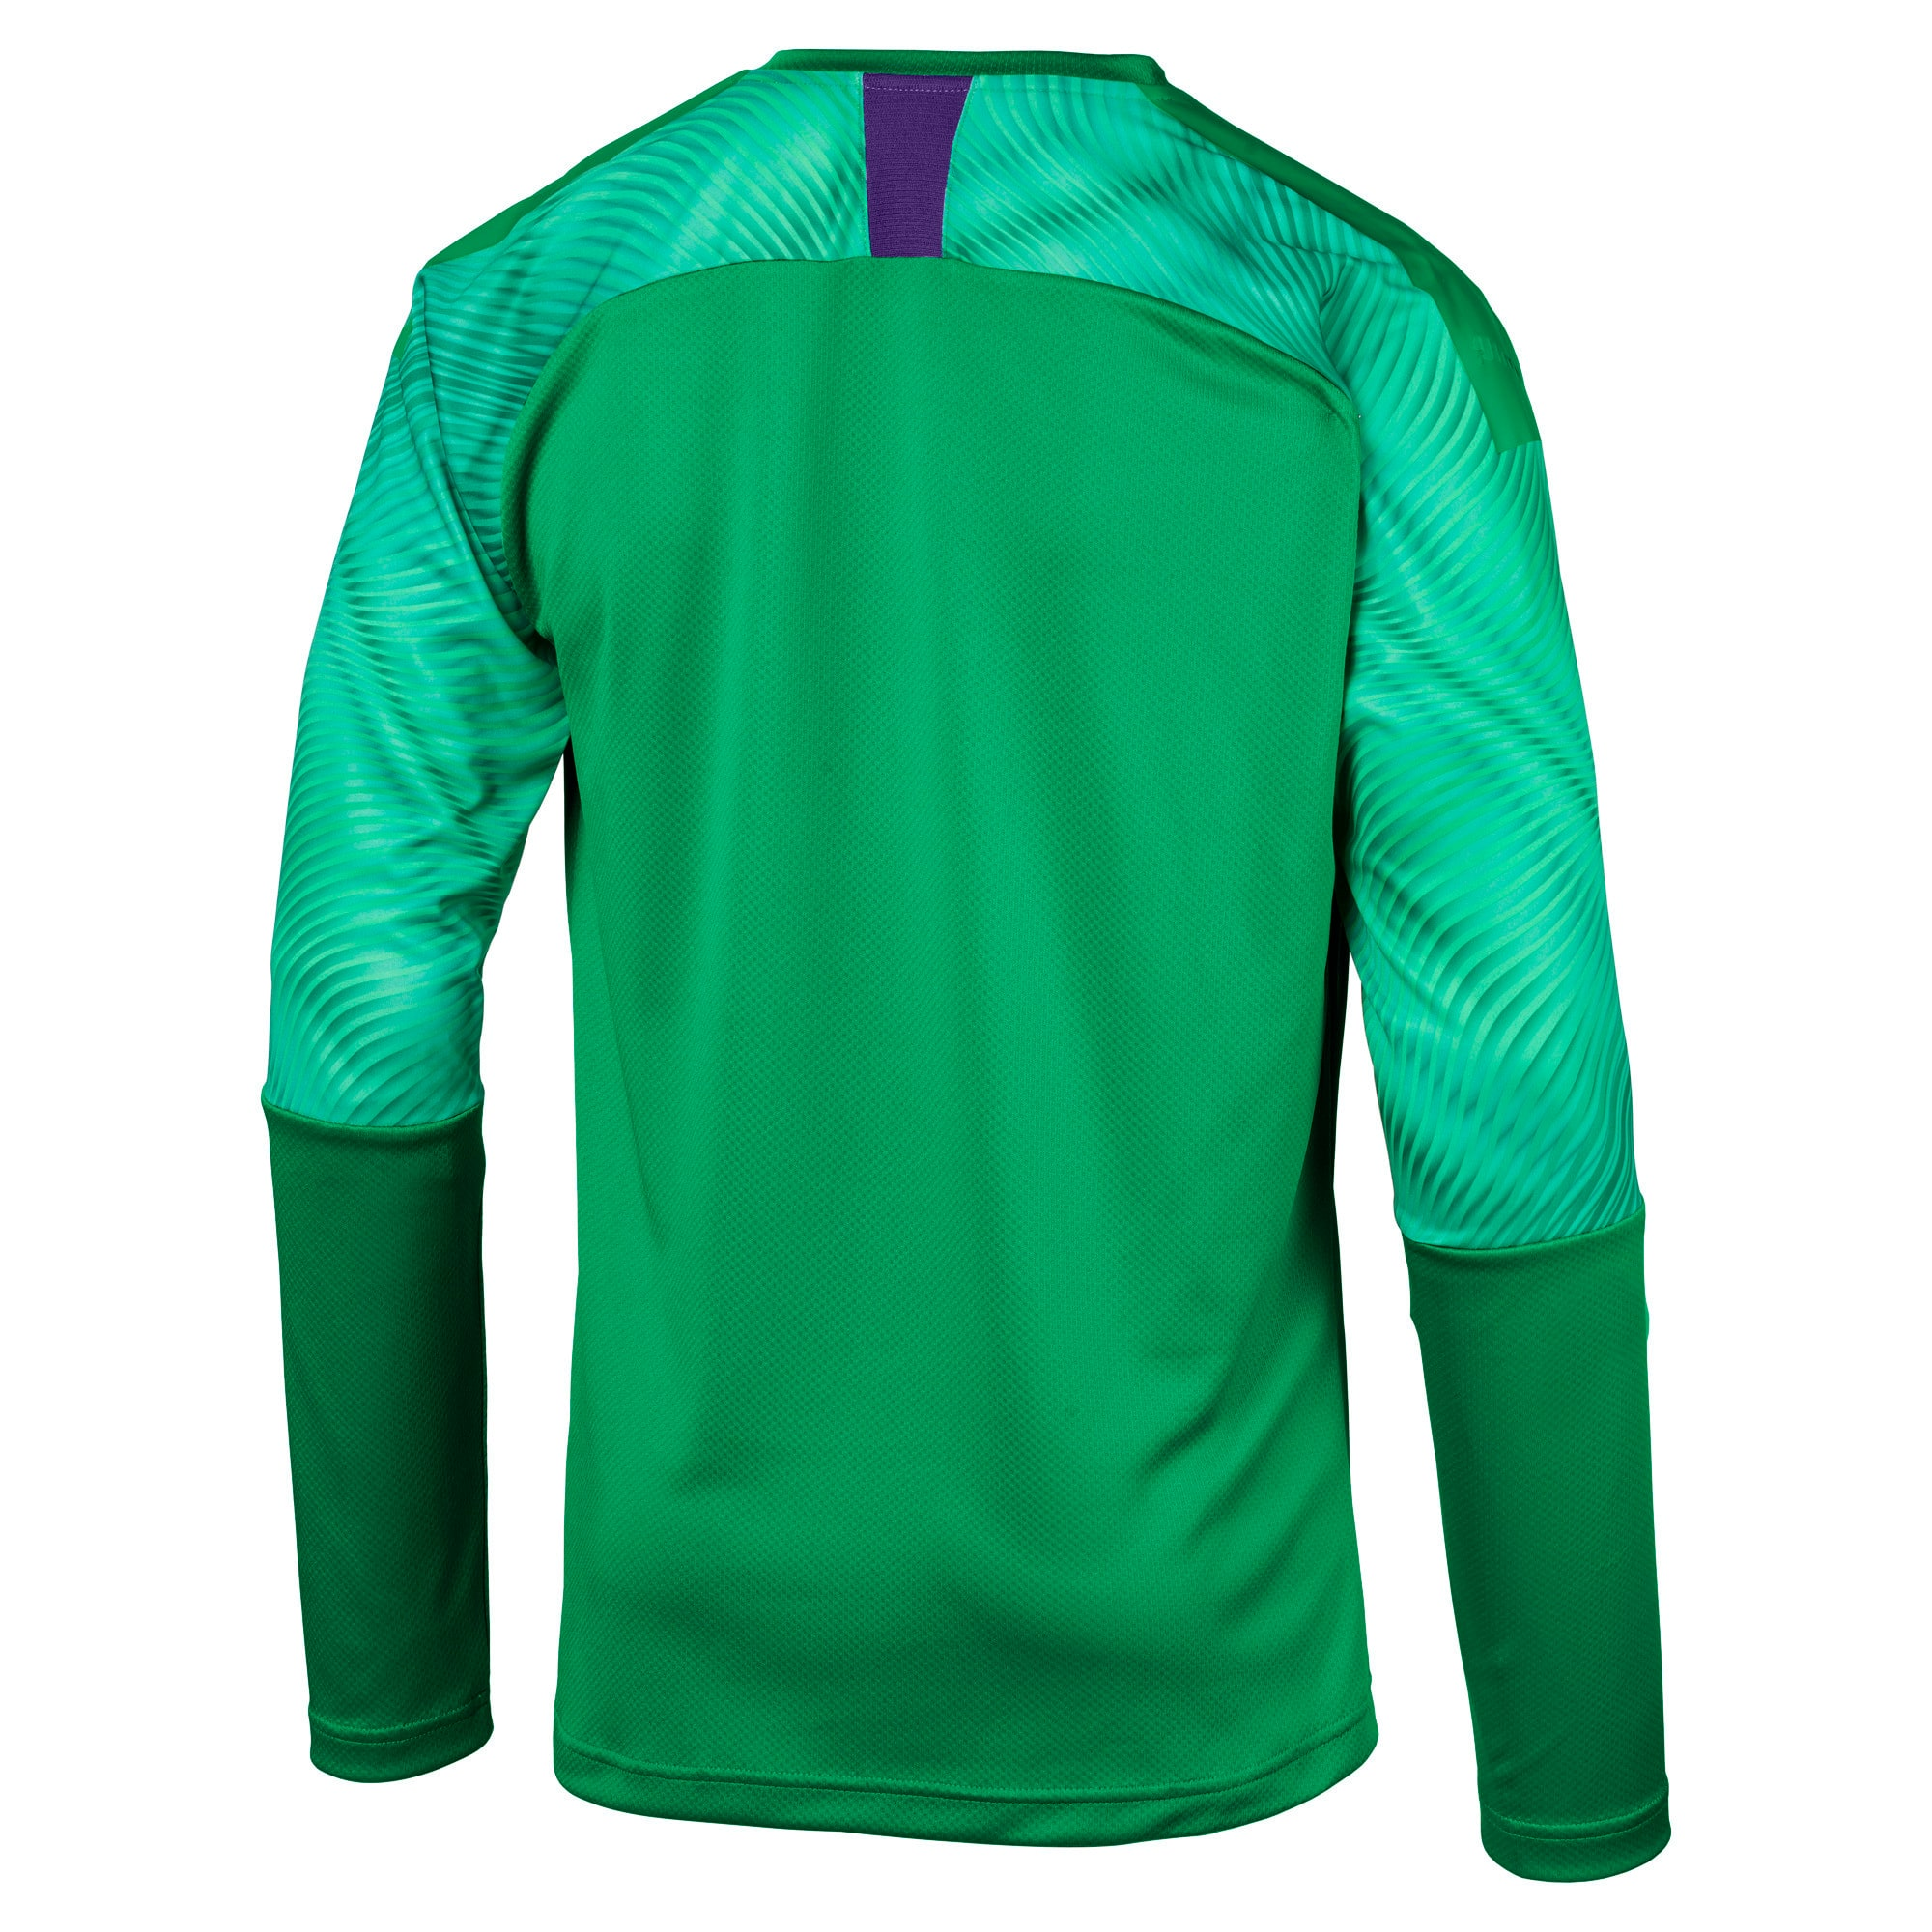 Thumbnail 5 of CUP Herren Langarm Torwarttrikot, Bright Green-Prism Violet, medium